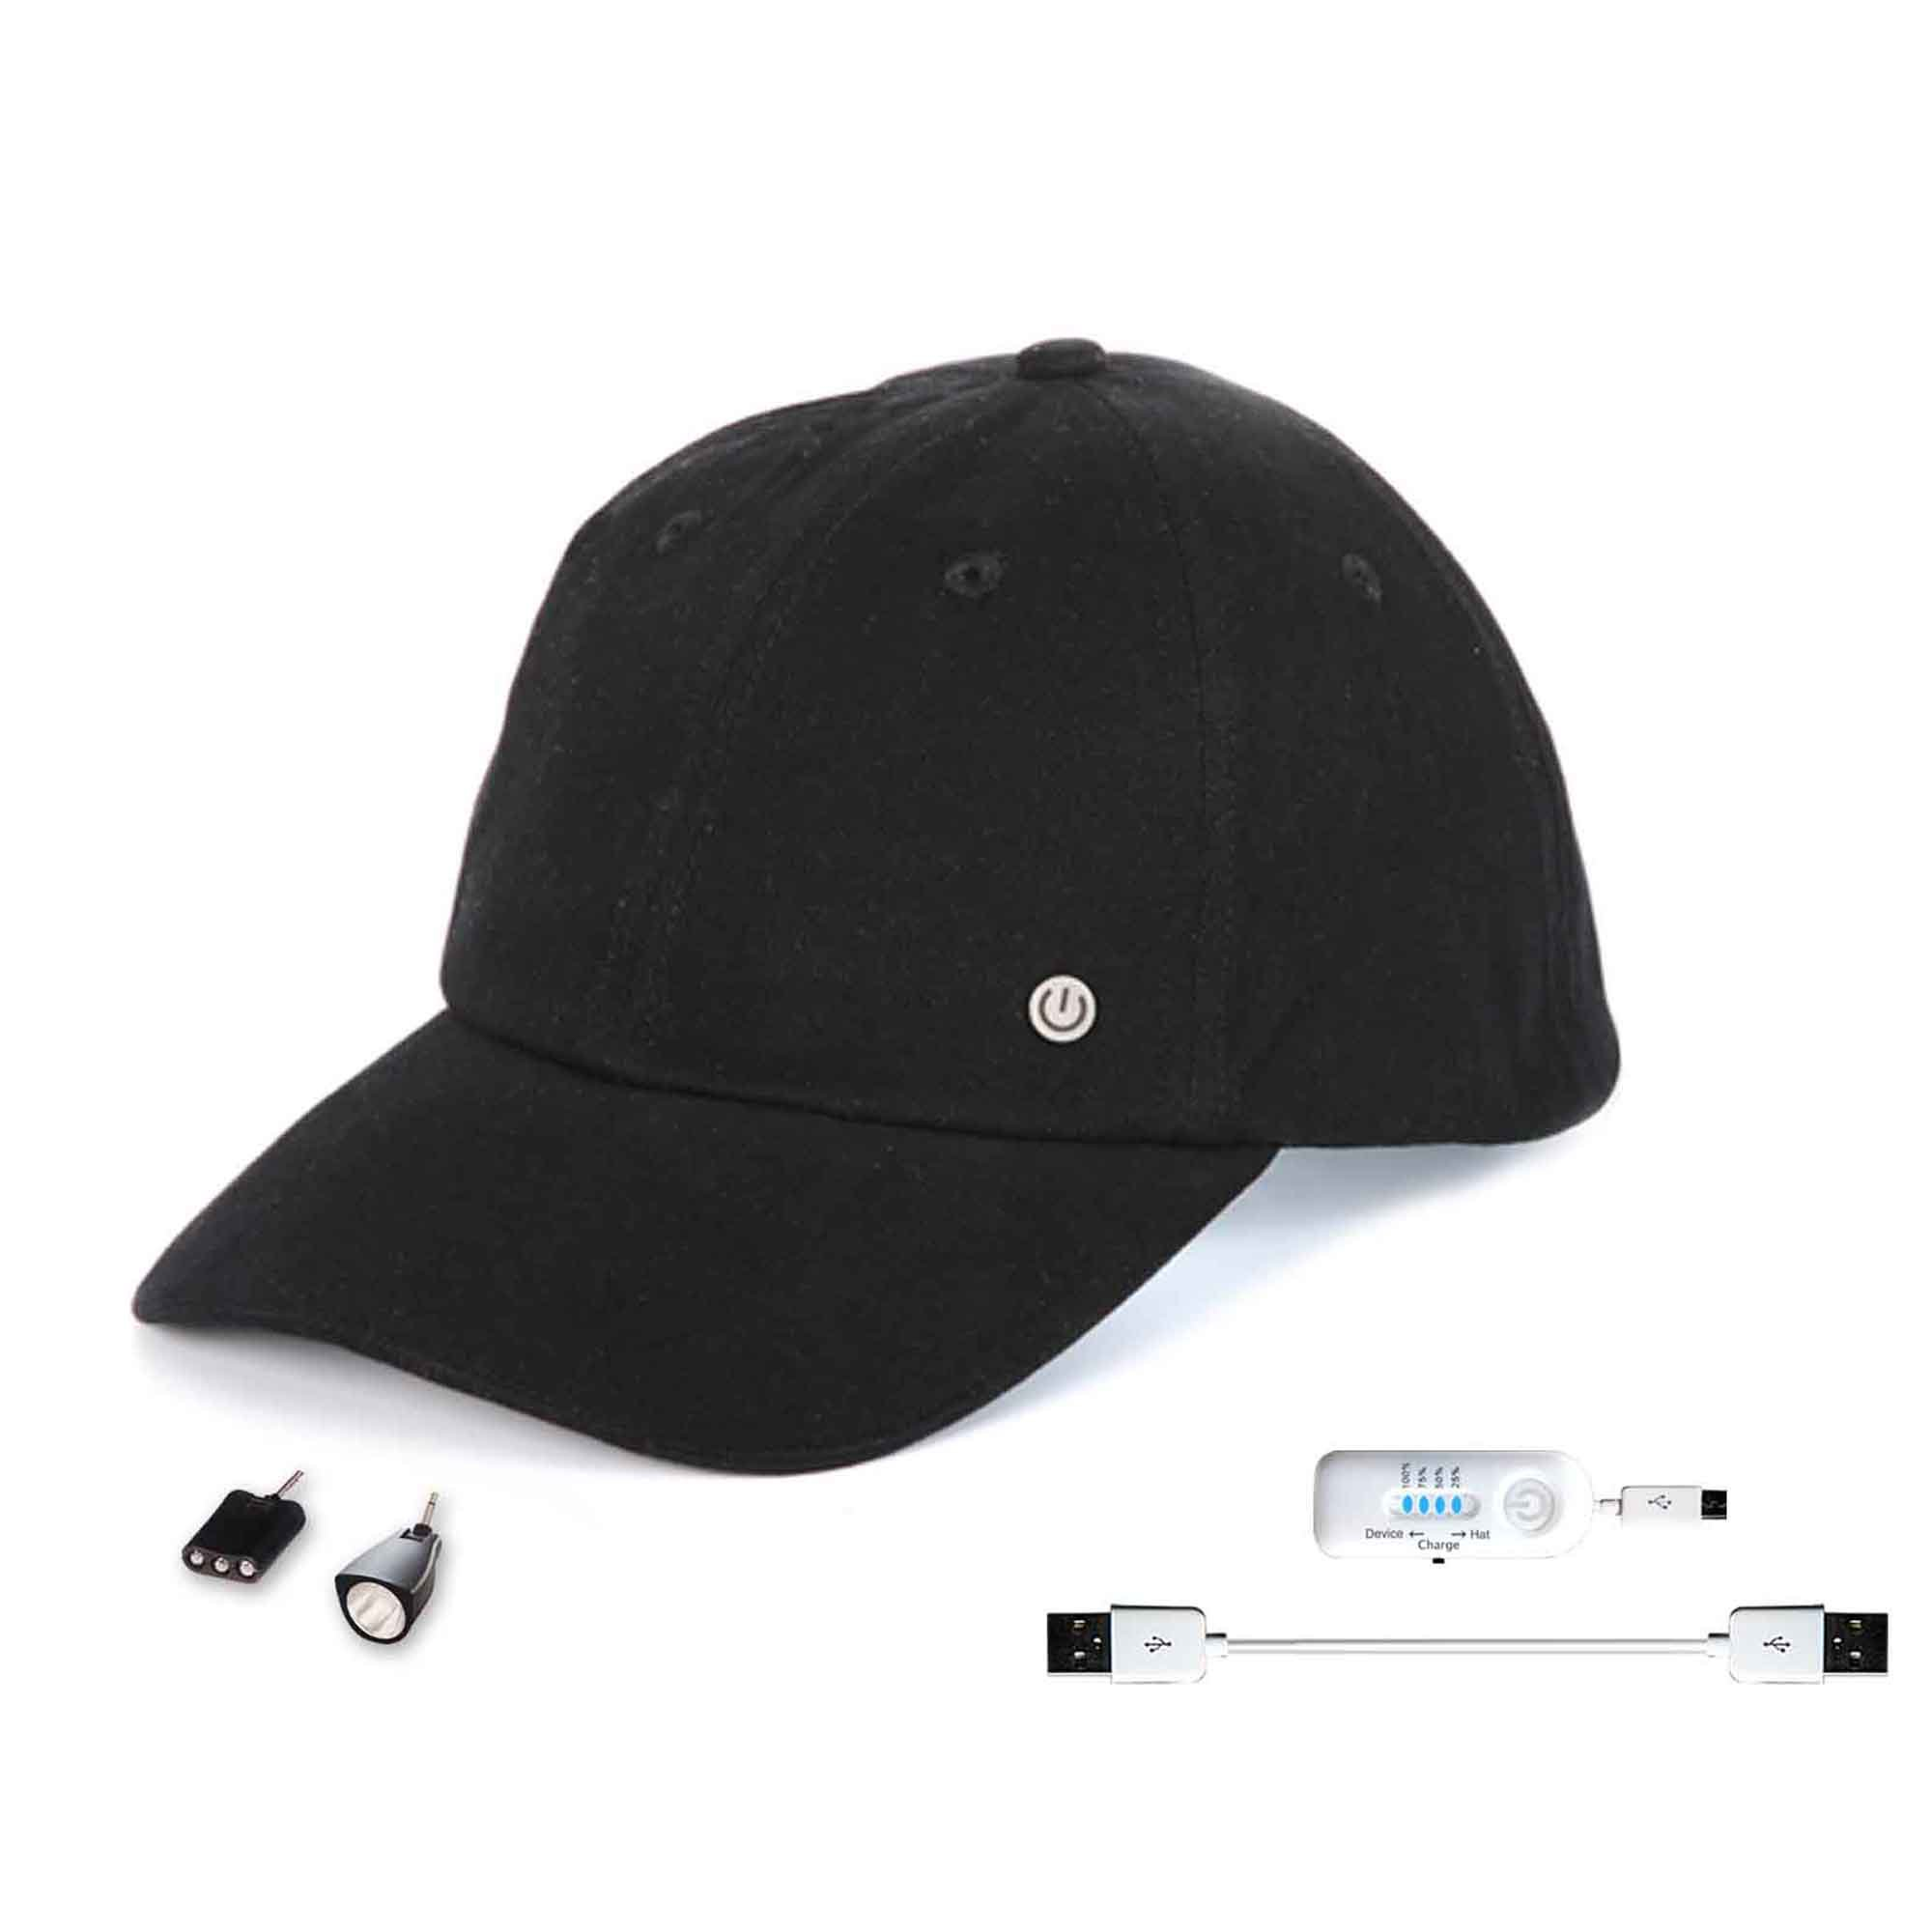 Power Gear Rechargeable Hat with Attachable LED Lights, Black